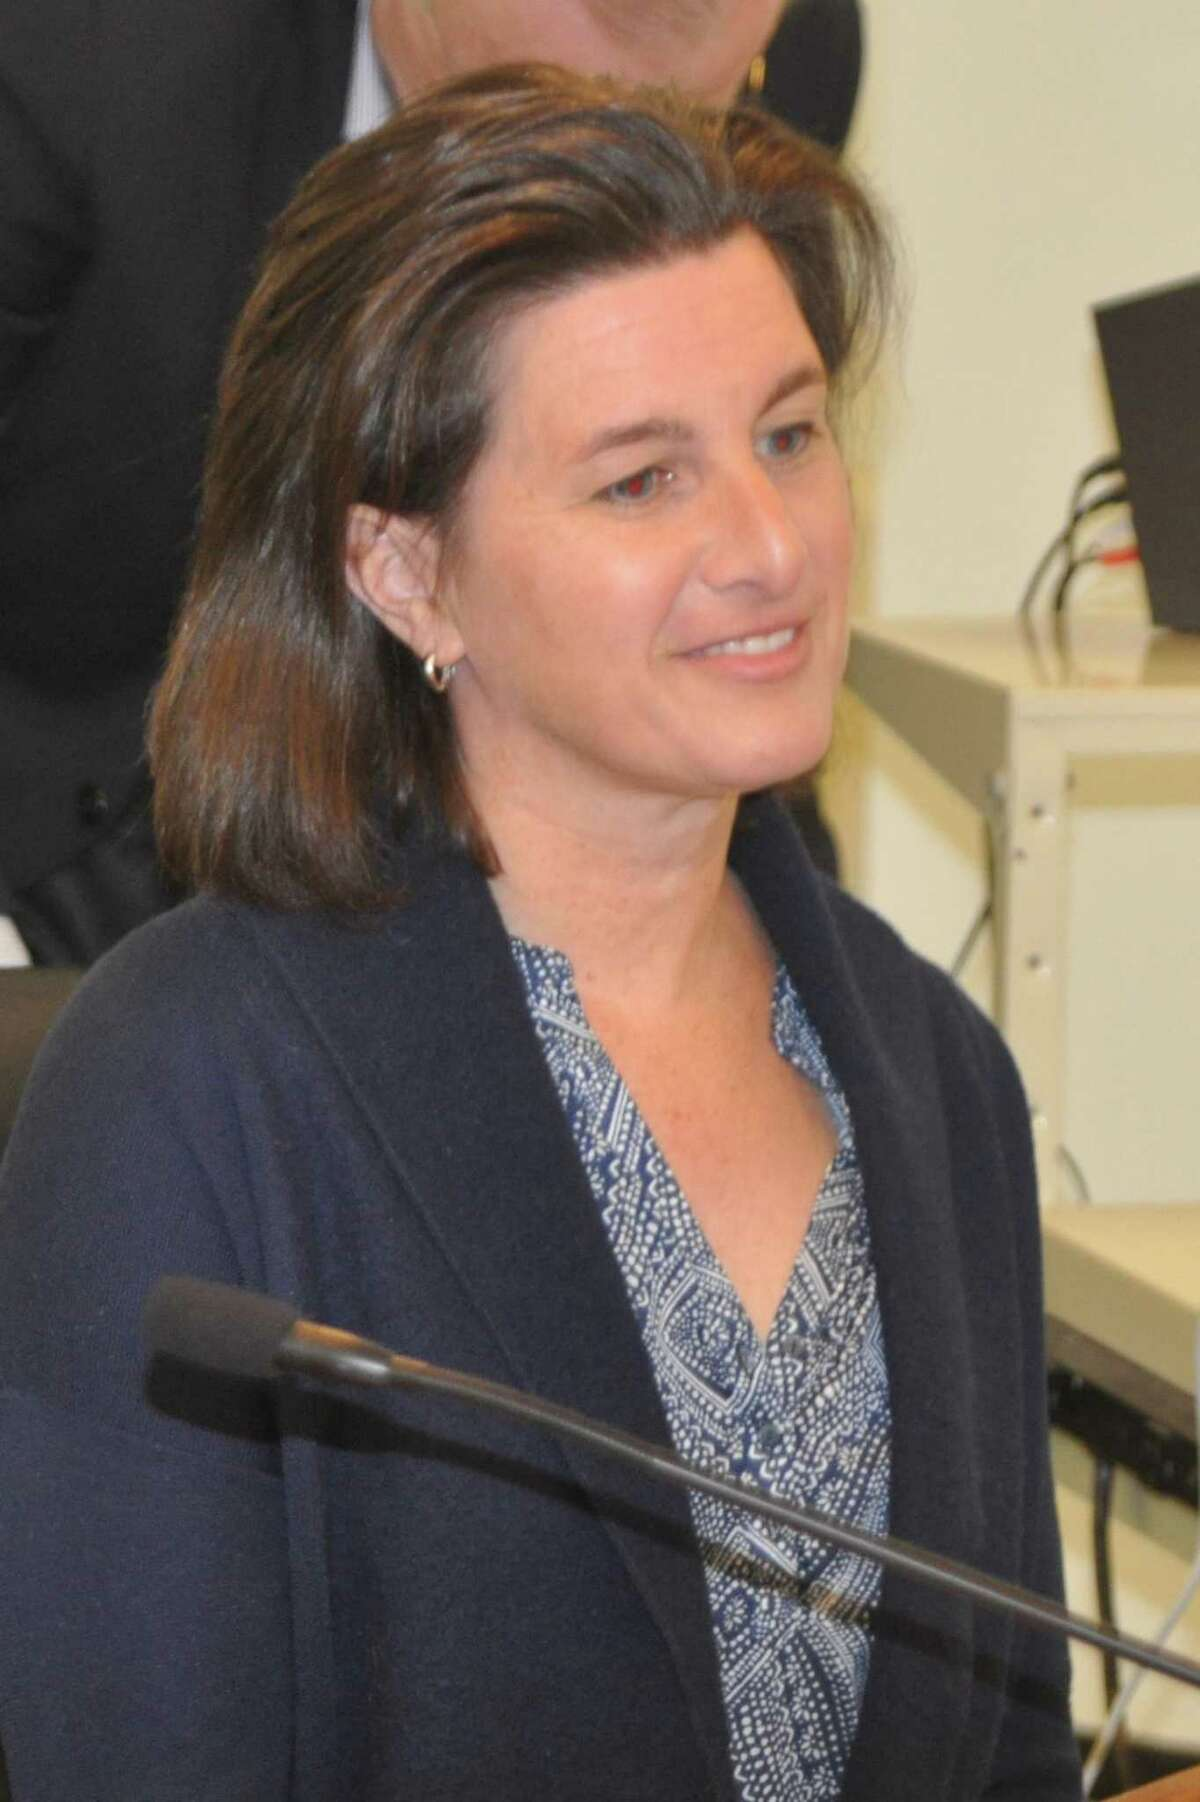 Glori Norwitt, who has led the Women's Center in Danbury and served on the board of Connecticut Against Gun Violence, was named to Ridgefield's Economic and Community Development Commission in December 2019.